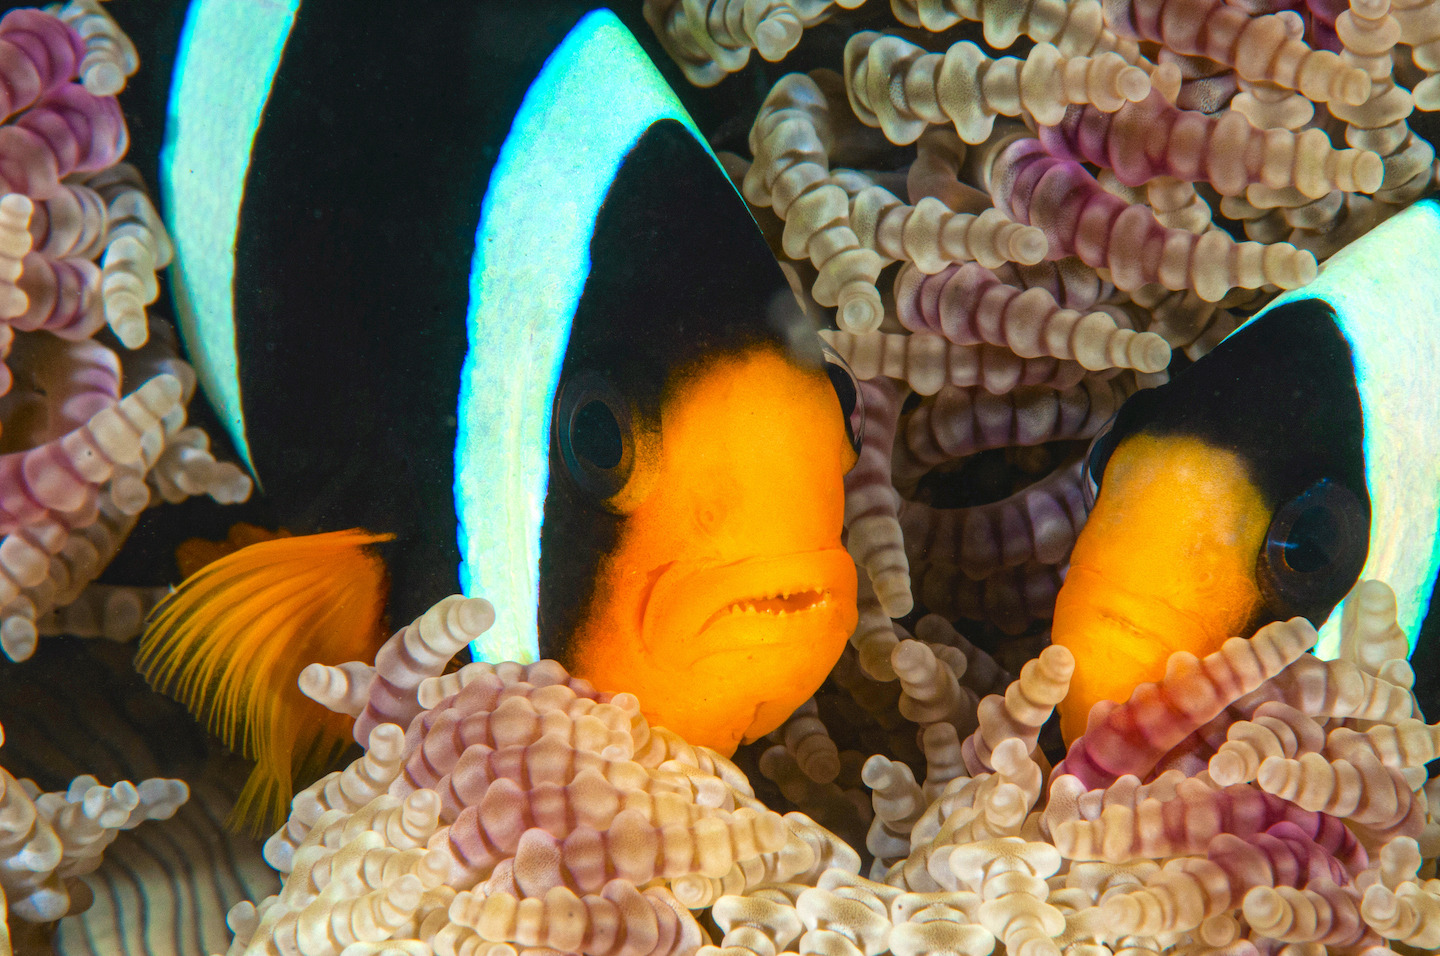 A Clark's anemone fish (Amphiprion clarkii) mating pair sheltering inside their anemone home. Photo: Umeed Mistry